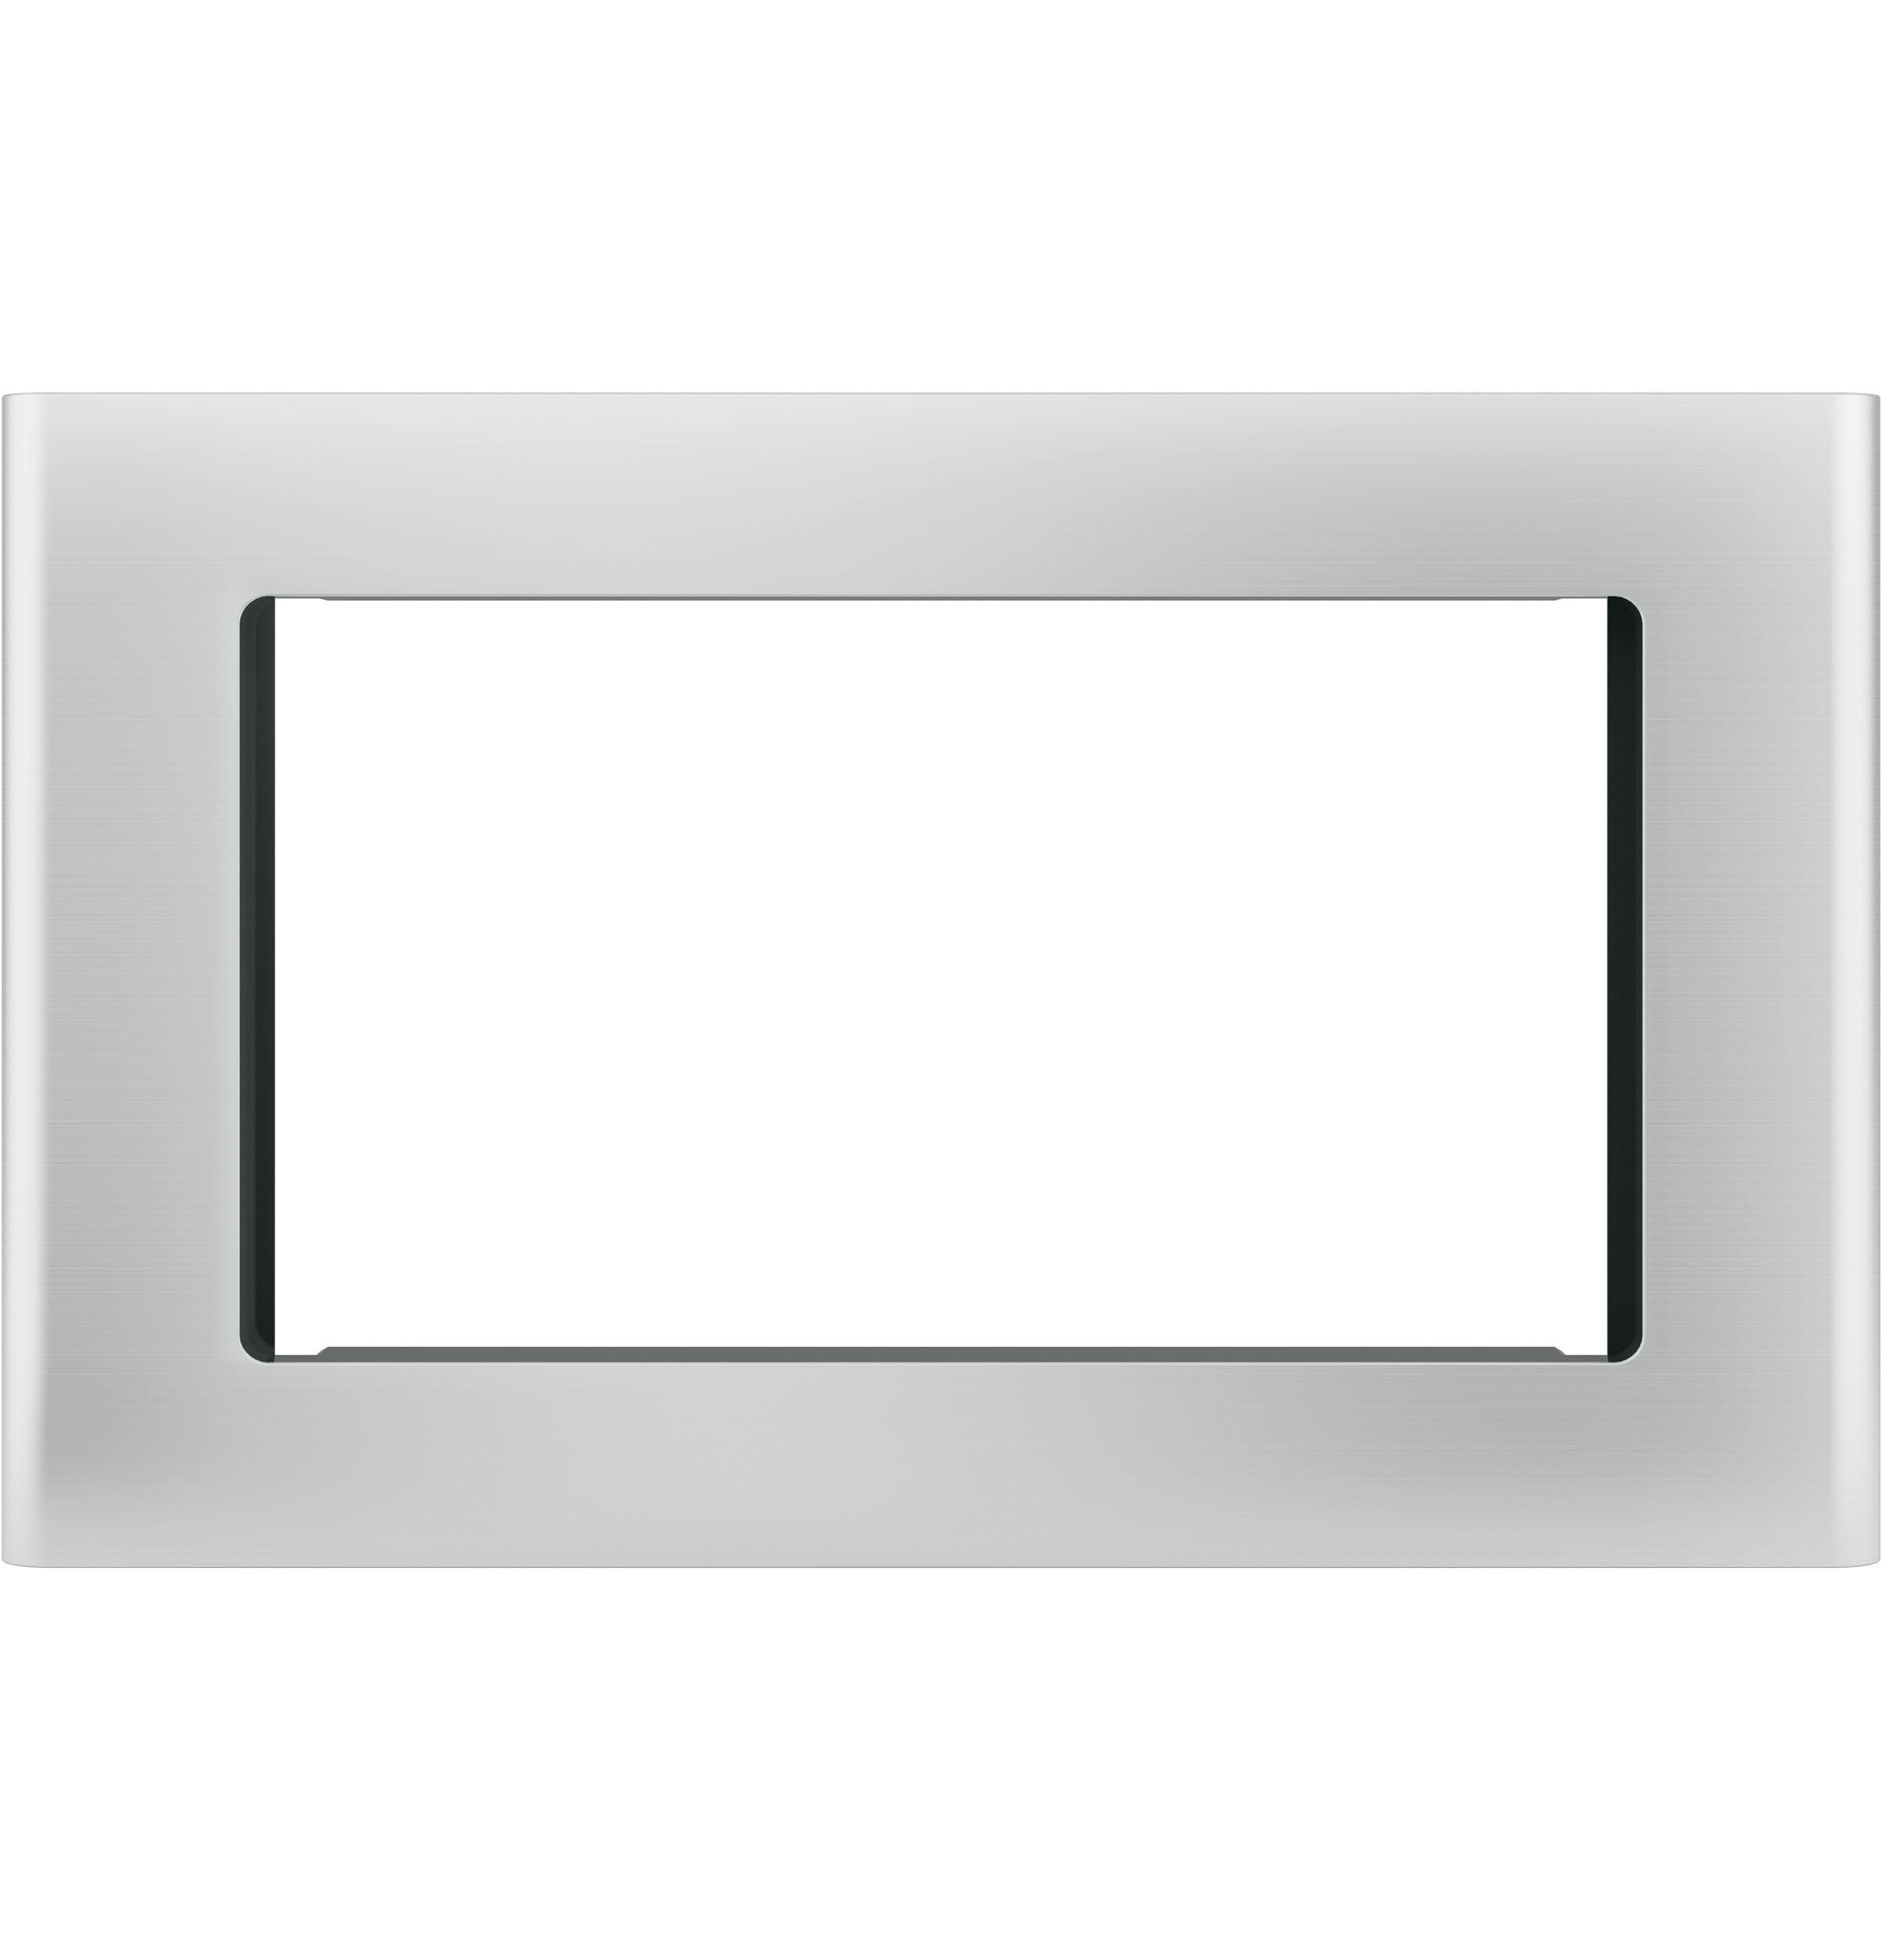 "Microwave Optional 30"" Built-In Trim Kit